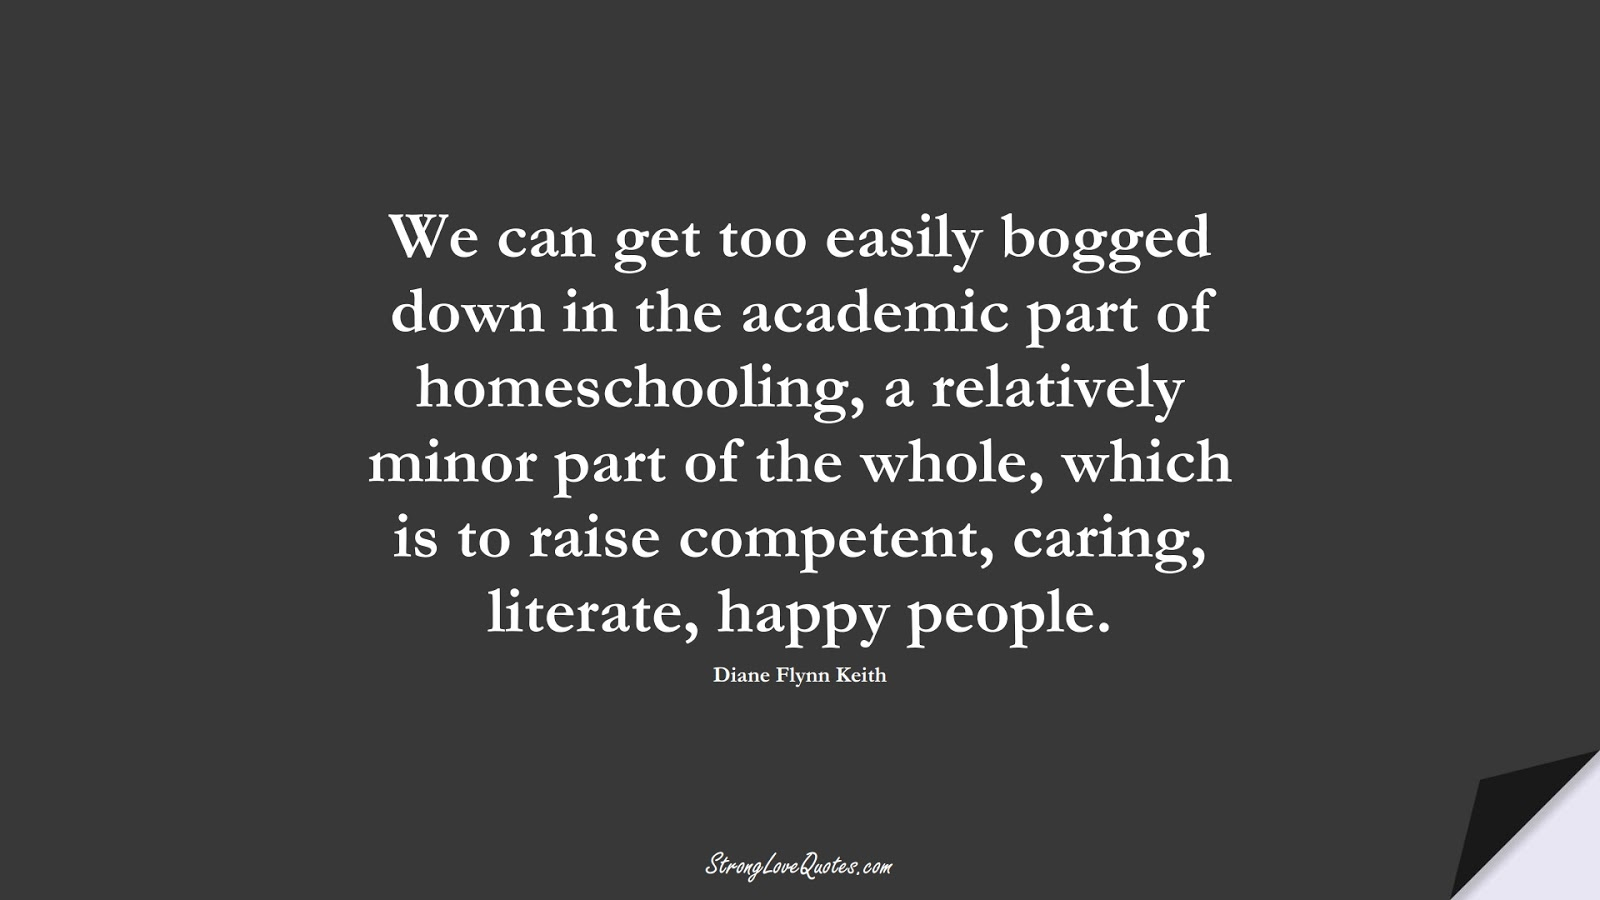 We can get too easily bogged down in the academic part of homeschooling, a relatively minor part of the whole, which is to raise competent, caring, literate, happy people. (Diane Flynn Keith);  #EducationQuotes